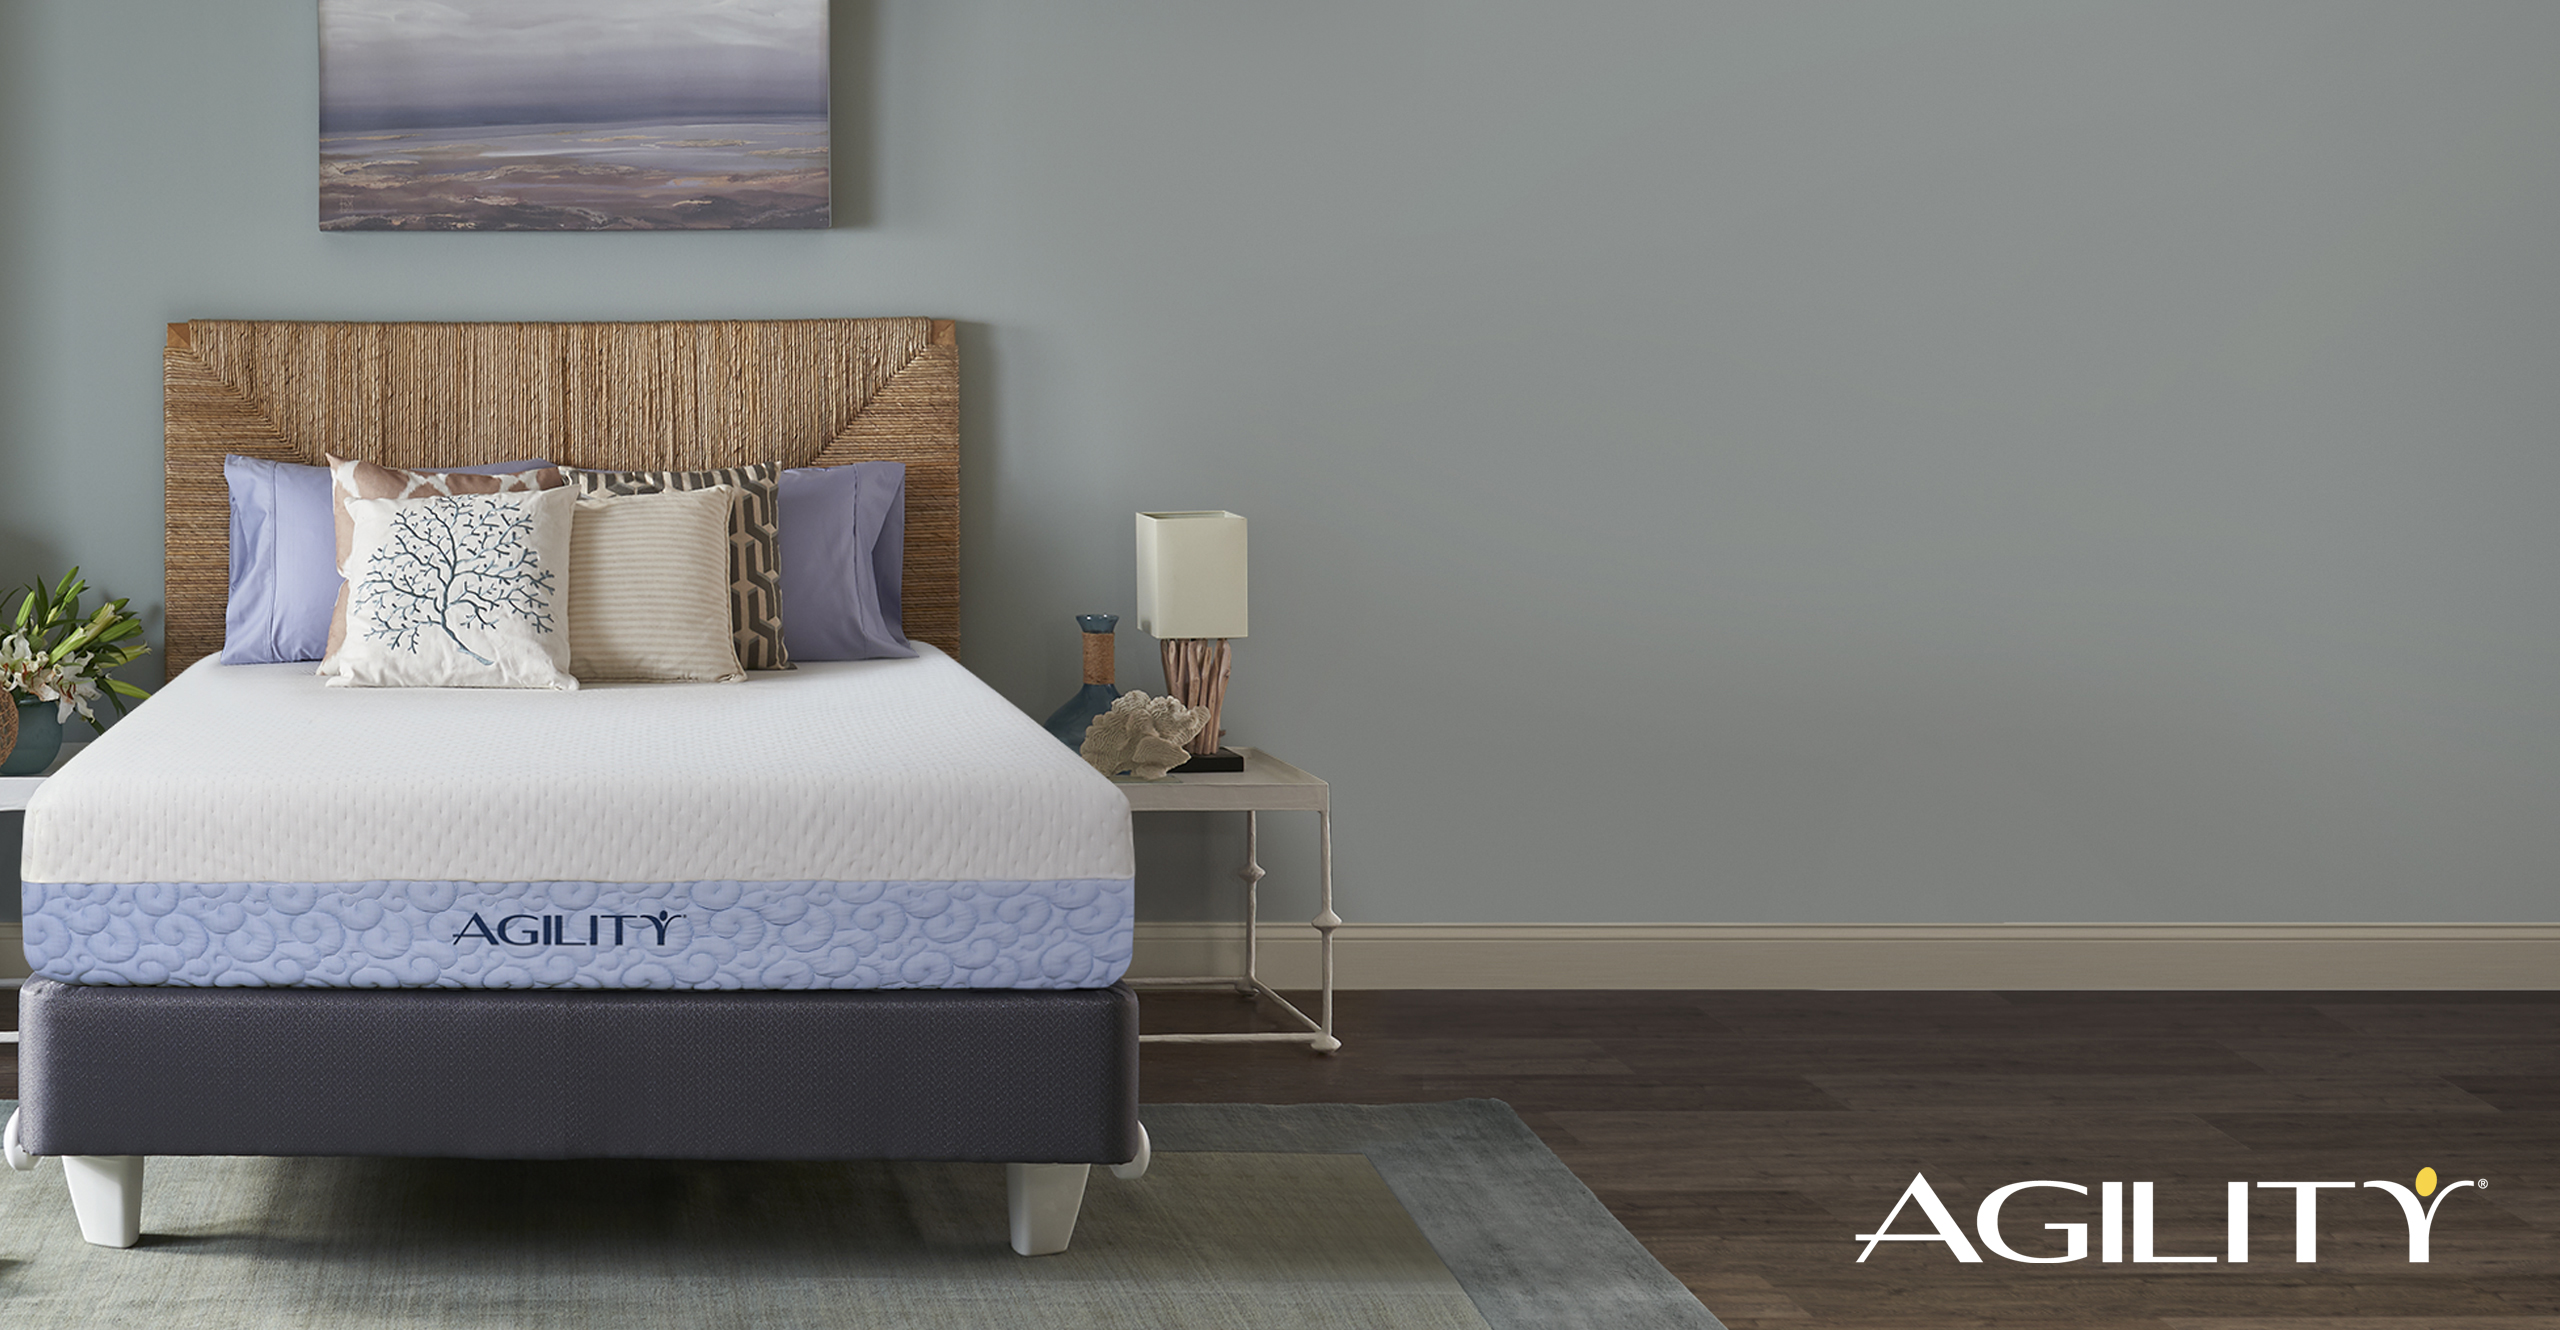 Photo of the Agility mattress in a bedroom setting